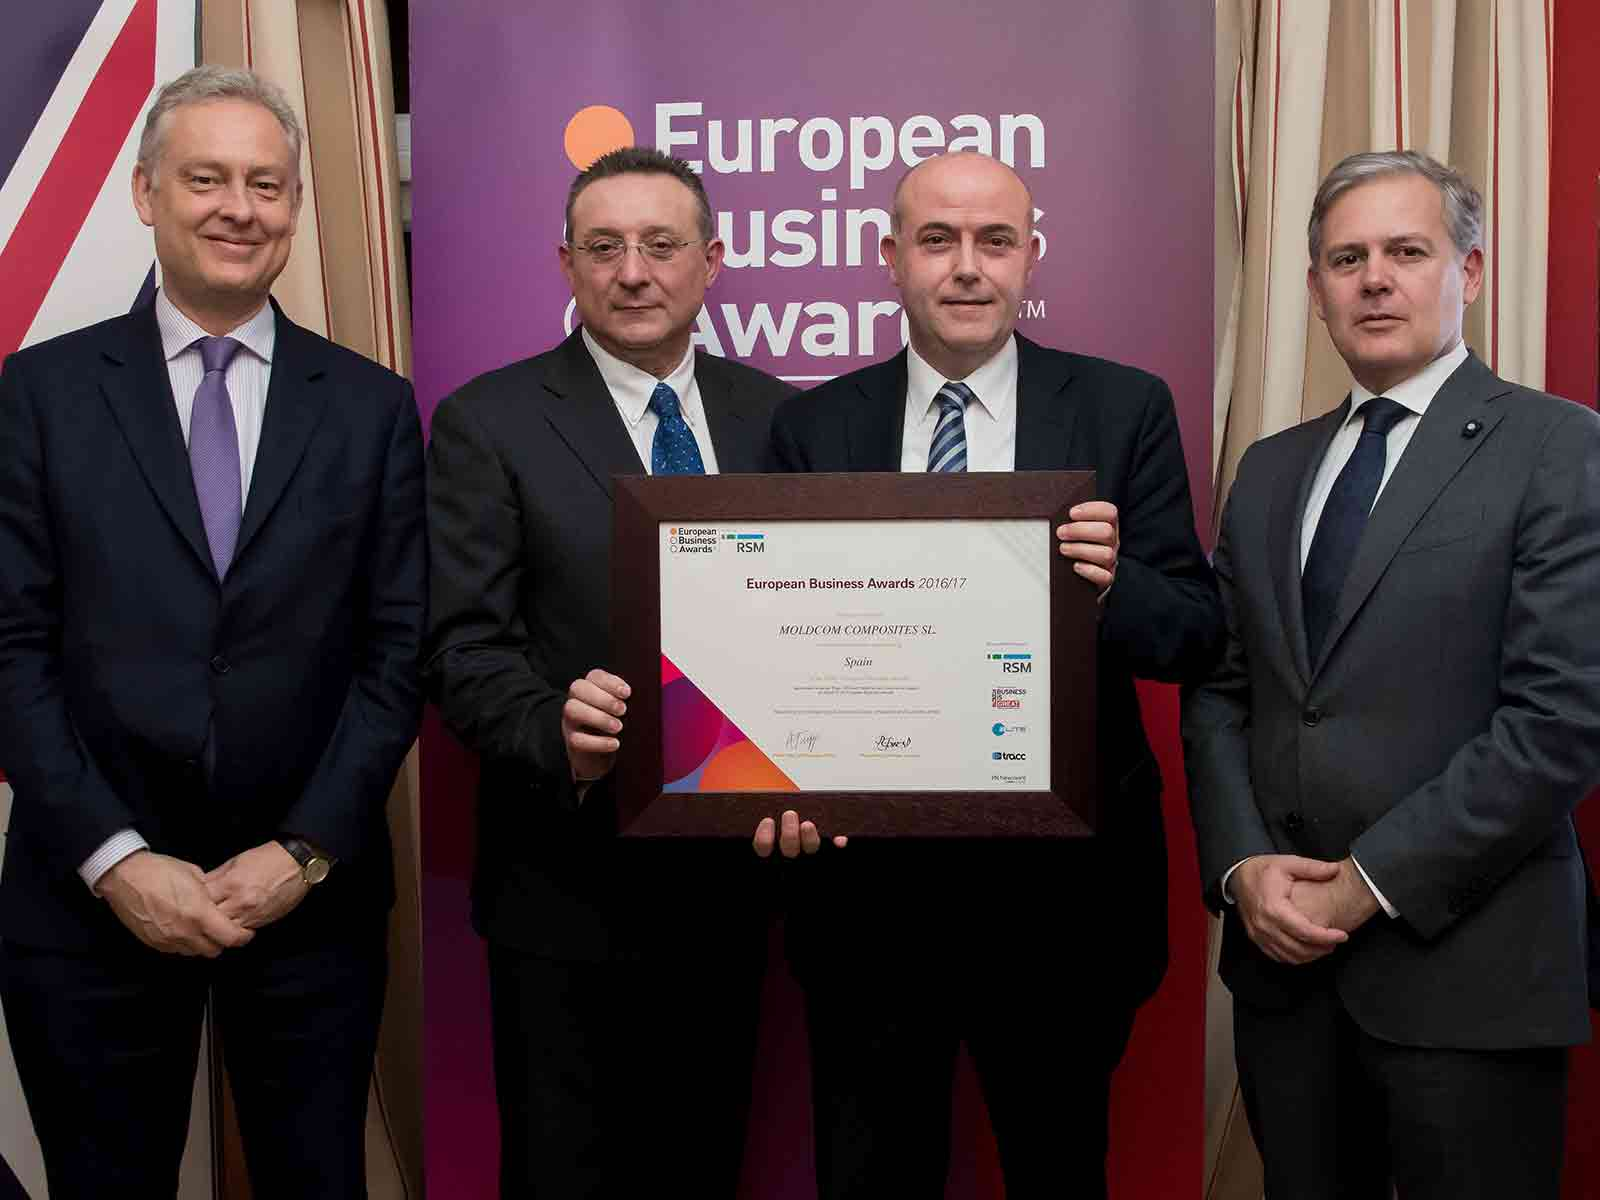 mc-bath-european-business-awards